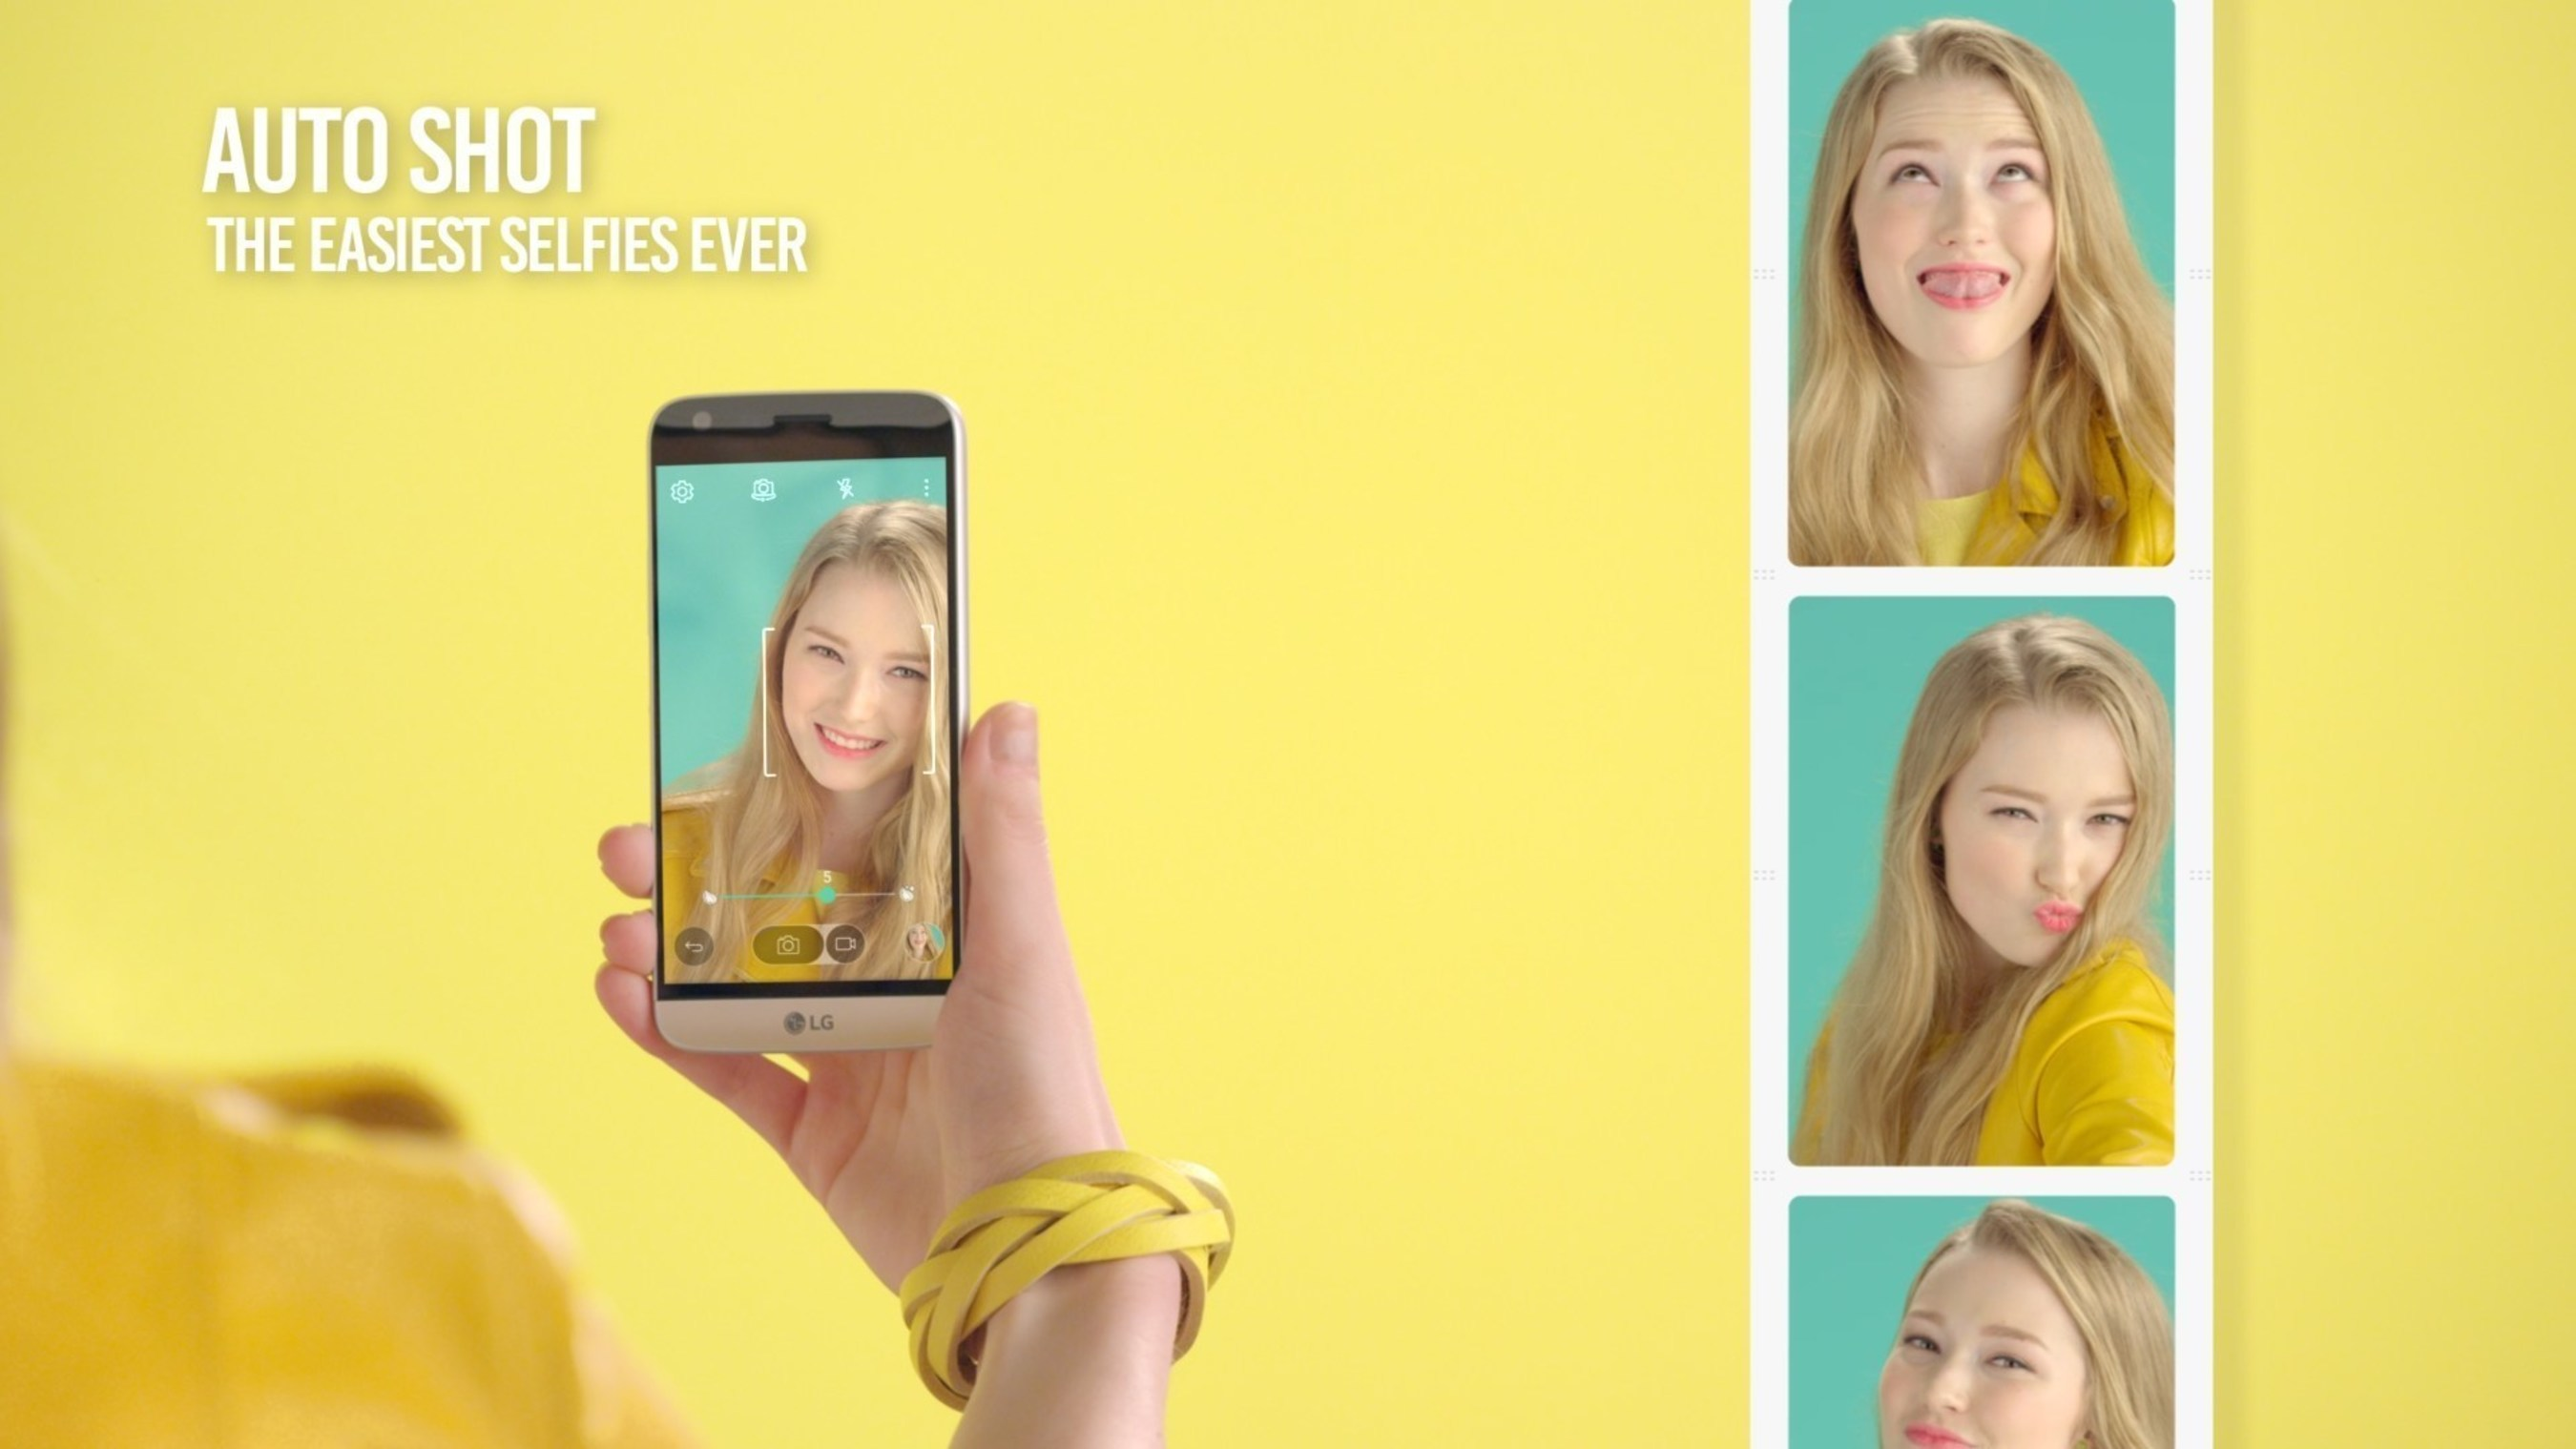 Auto Shot: An enhanced version of Gesture Shot, take the perfect selfies with this smart feature which triggers the shutter as soon as the users' face is recognized.